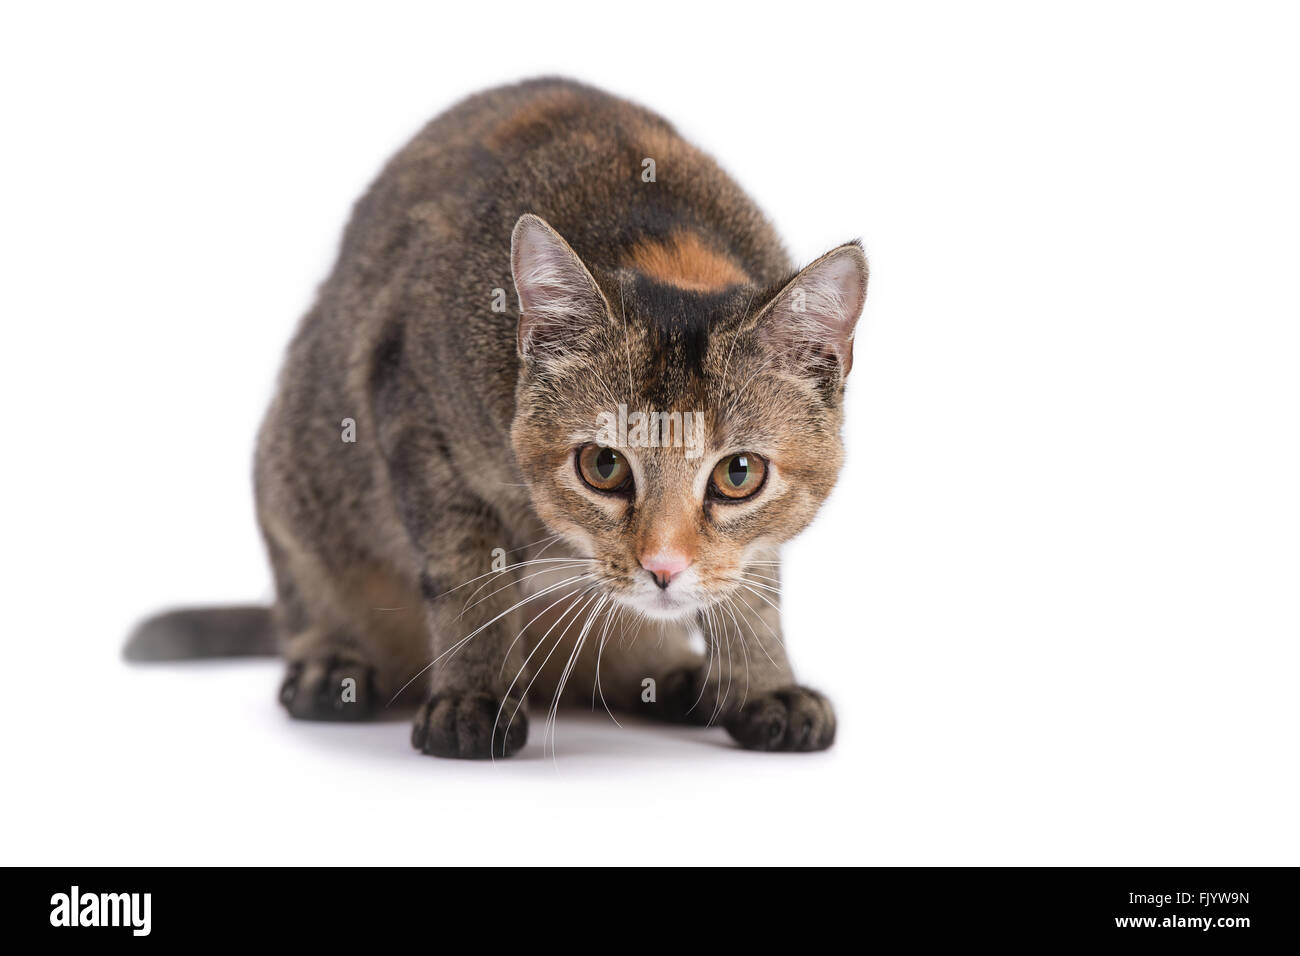 Curious Calico Domestic Short-hair Leaning Down on White Background - Stock Image